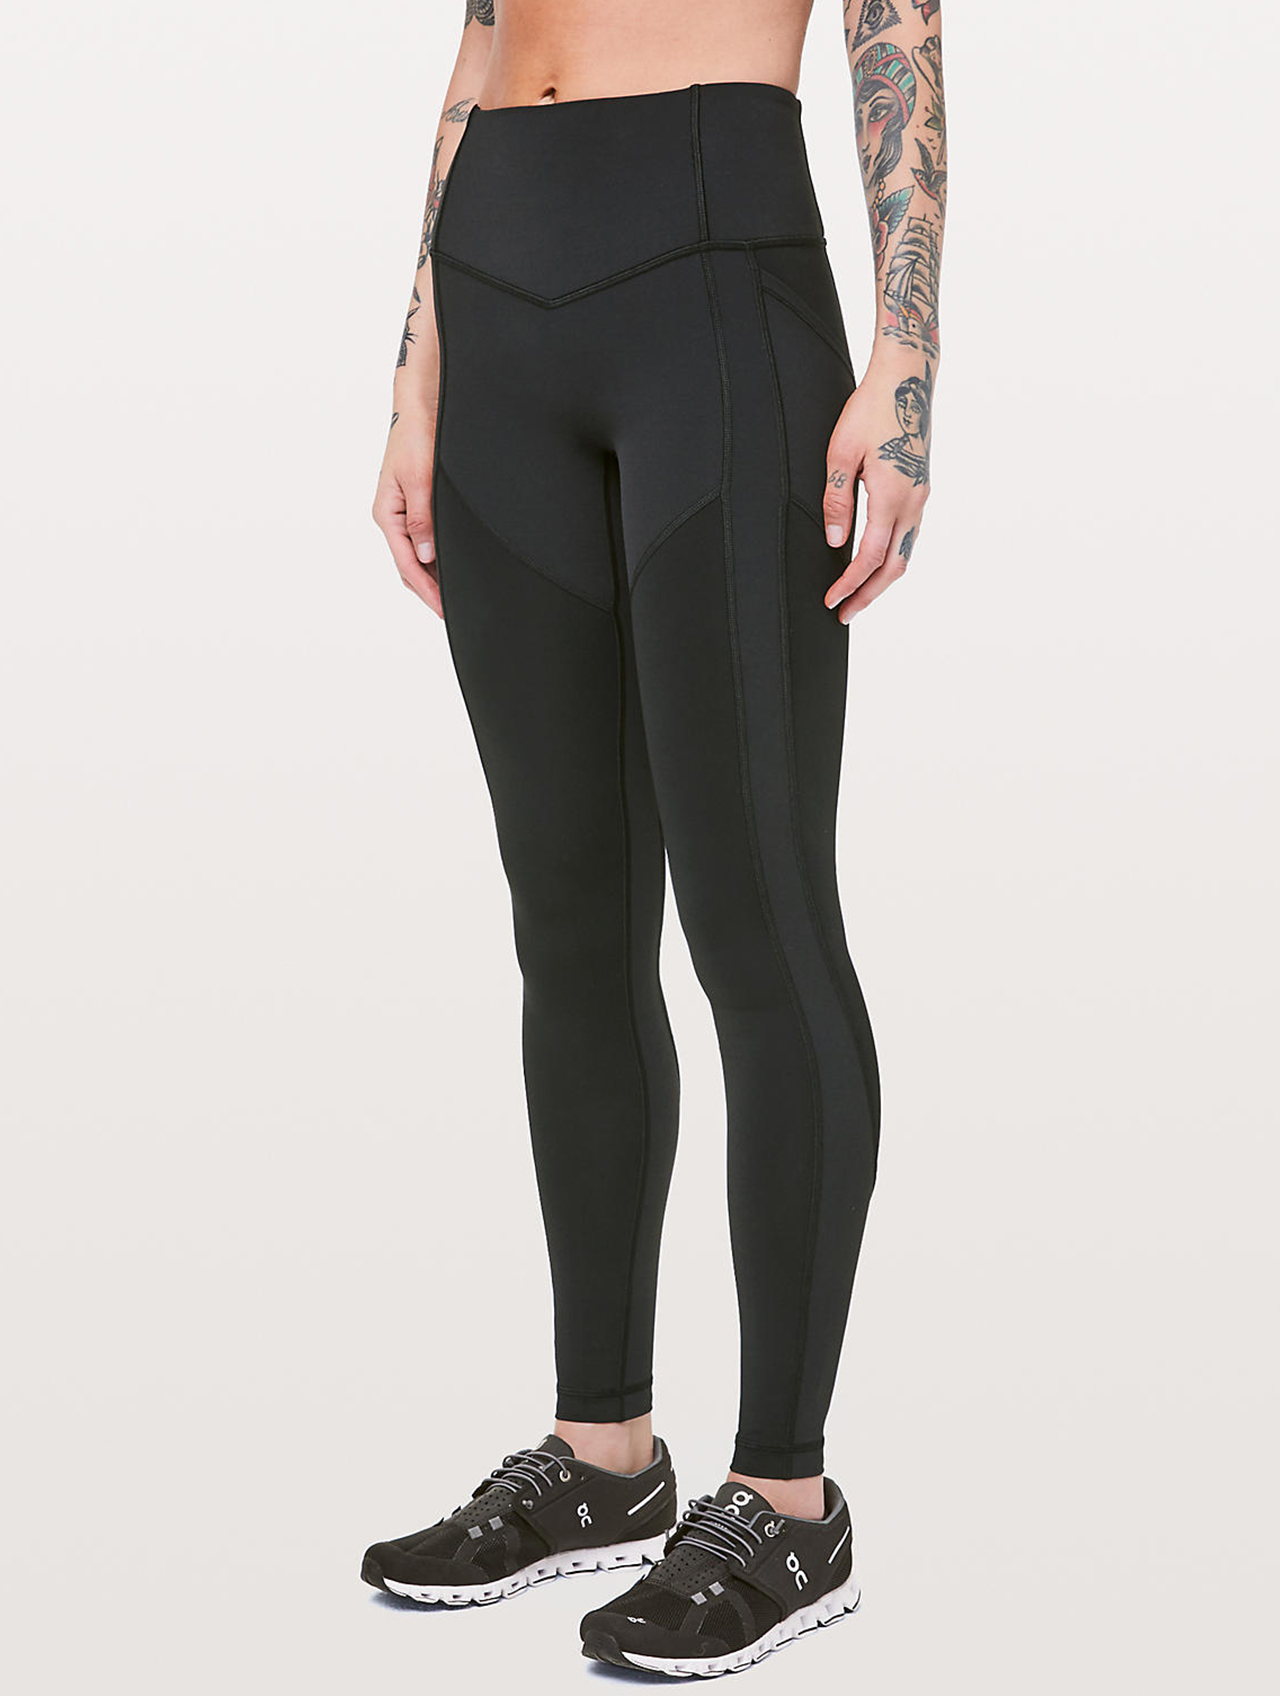 "bb4197c1c9ba Accurately named the ""All the Right Places Pant II"", these high-rise  leggings are a little more high-tech than your average pair."